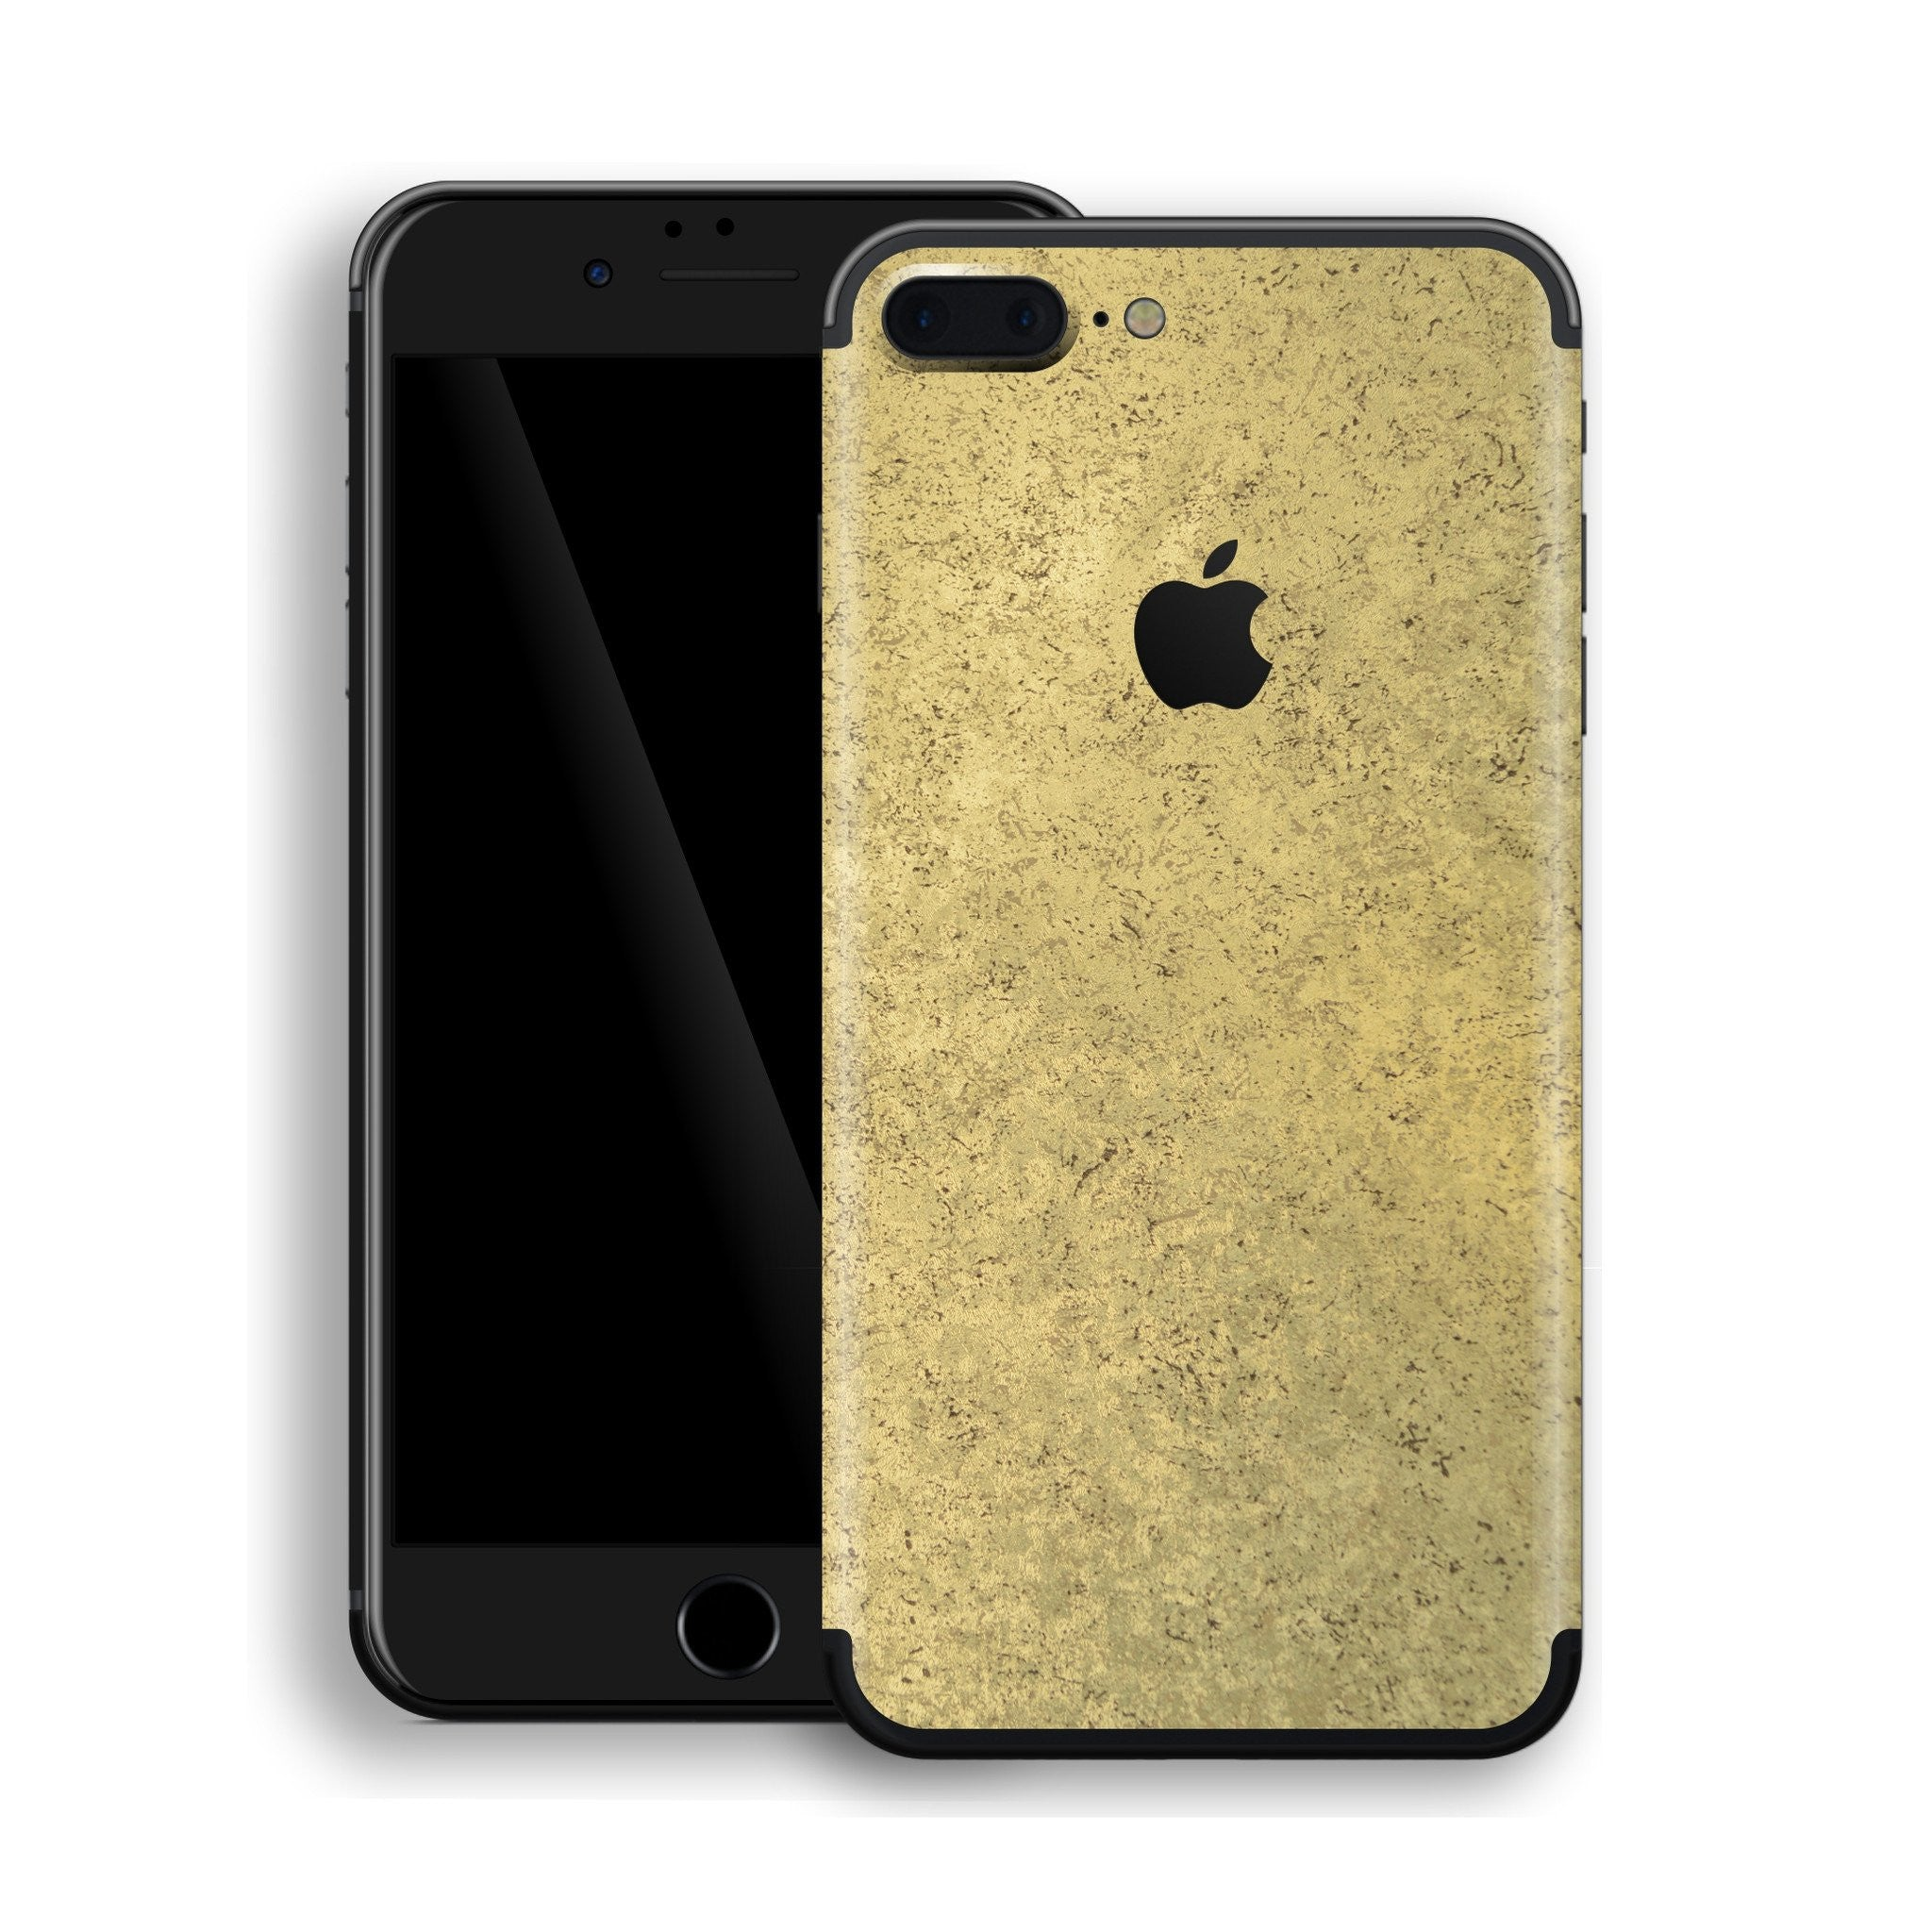 iPhone 7 Plus Luxuria Egyptian Gold and Black Matt Skin Wrap Decal Protector | EasySkinz